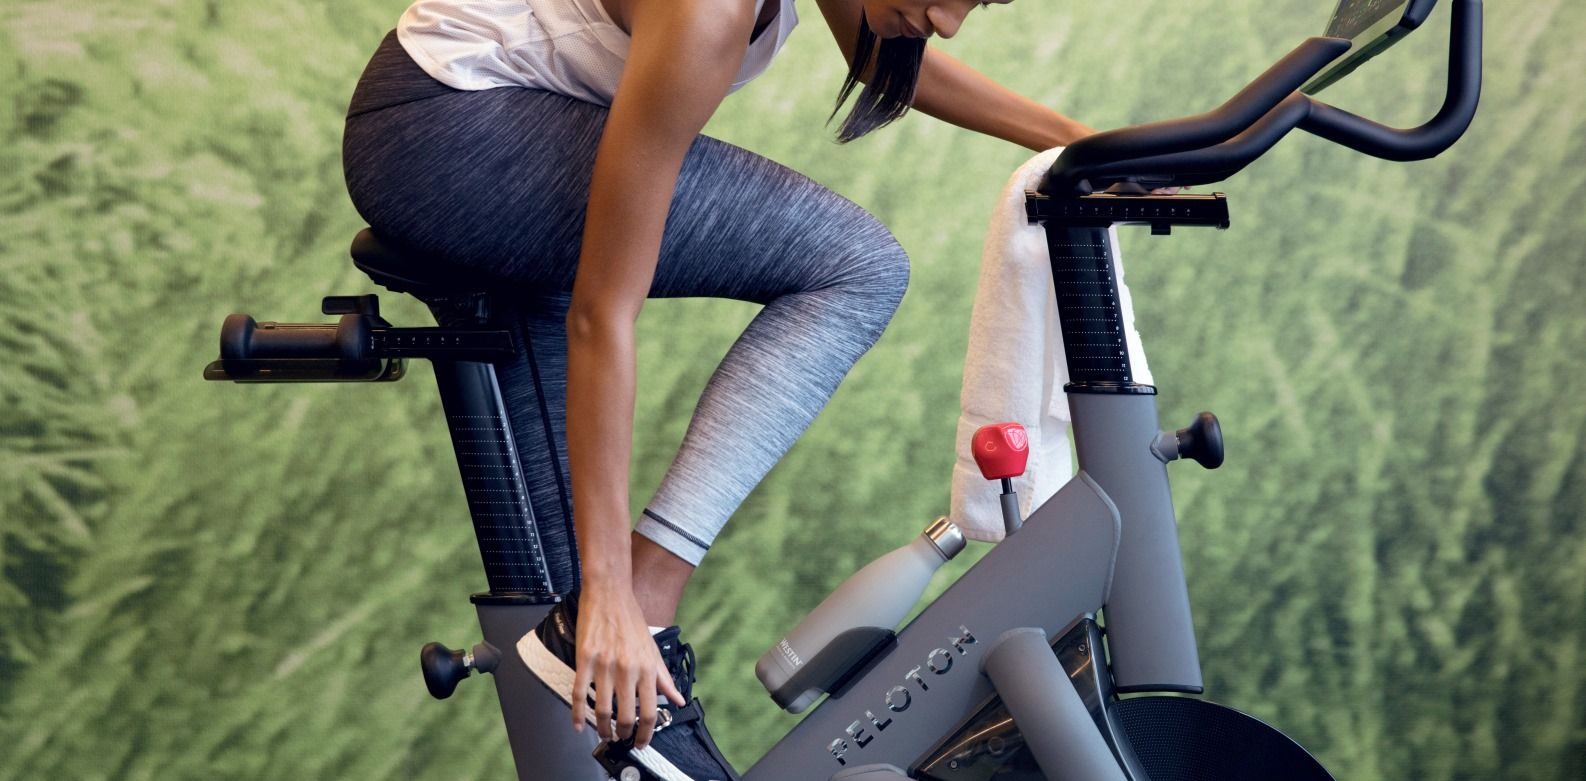 WestinWORKOUT® with Peloton | Westin Hotels and Resorts